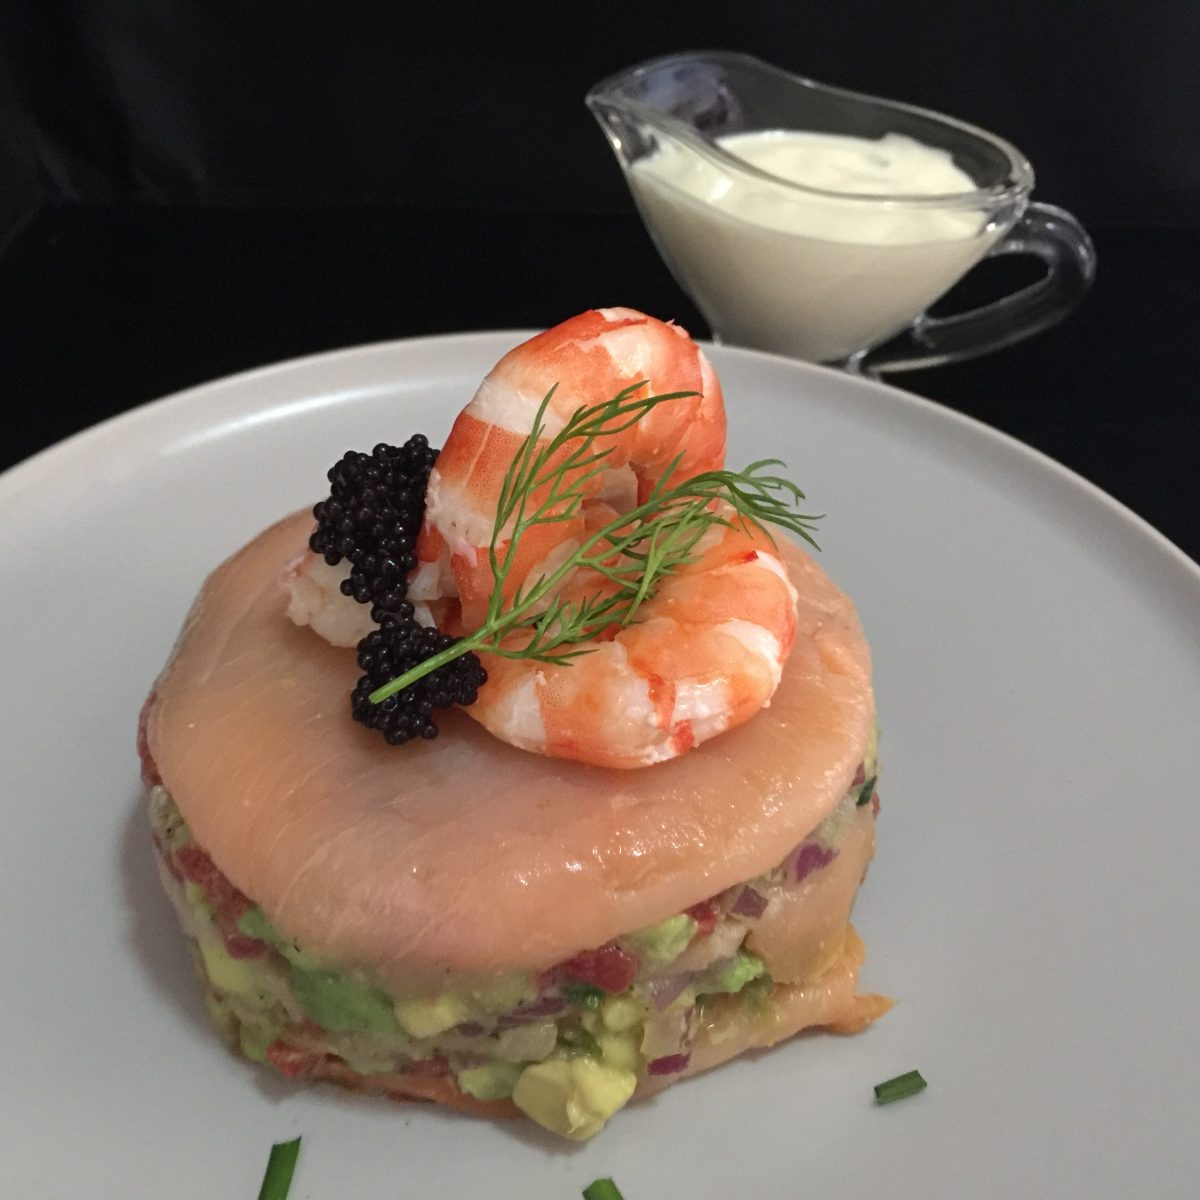 layers of smoked salmon lemony avocado salsa topped with 3 fresh ly peeled prawns and a little black caviar with a sprig of dill and lemony mayonnaise dressing with chopped dill or chives on the side by cooking meals for one